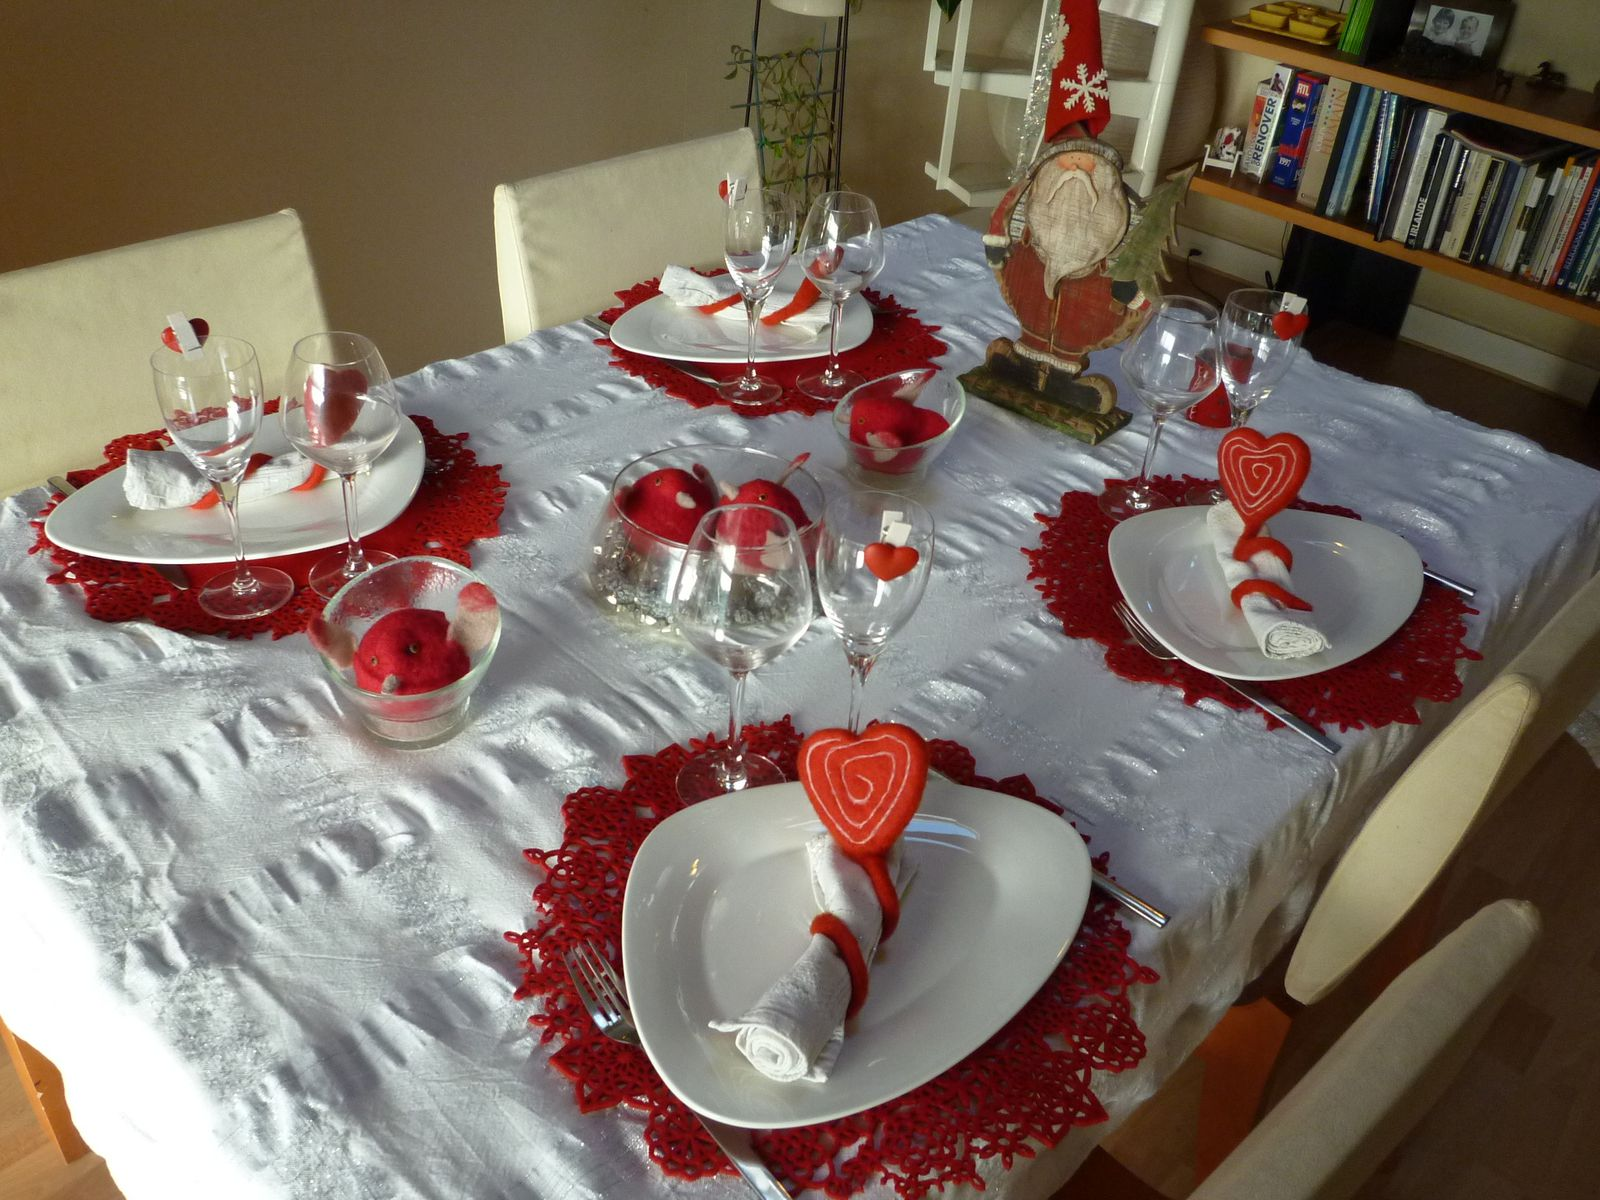 Comment decorer la table de cuisine - Comment decorer sa maison pour noel ...